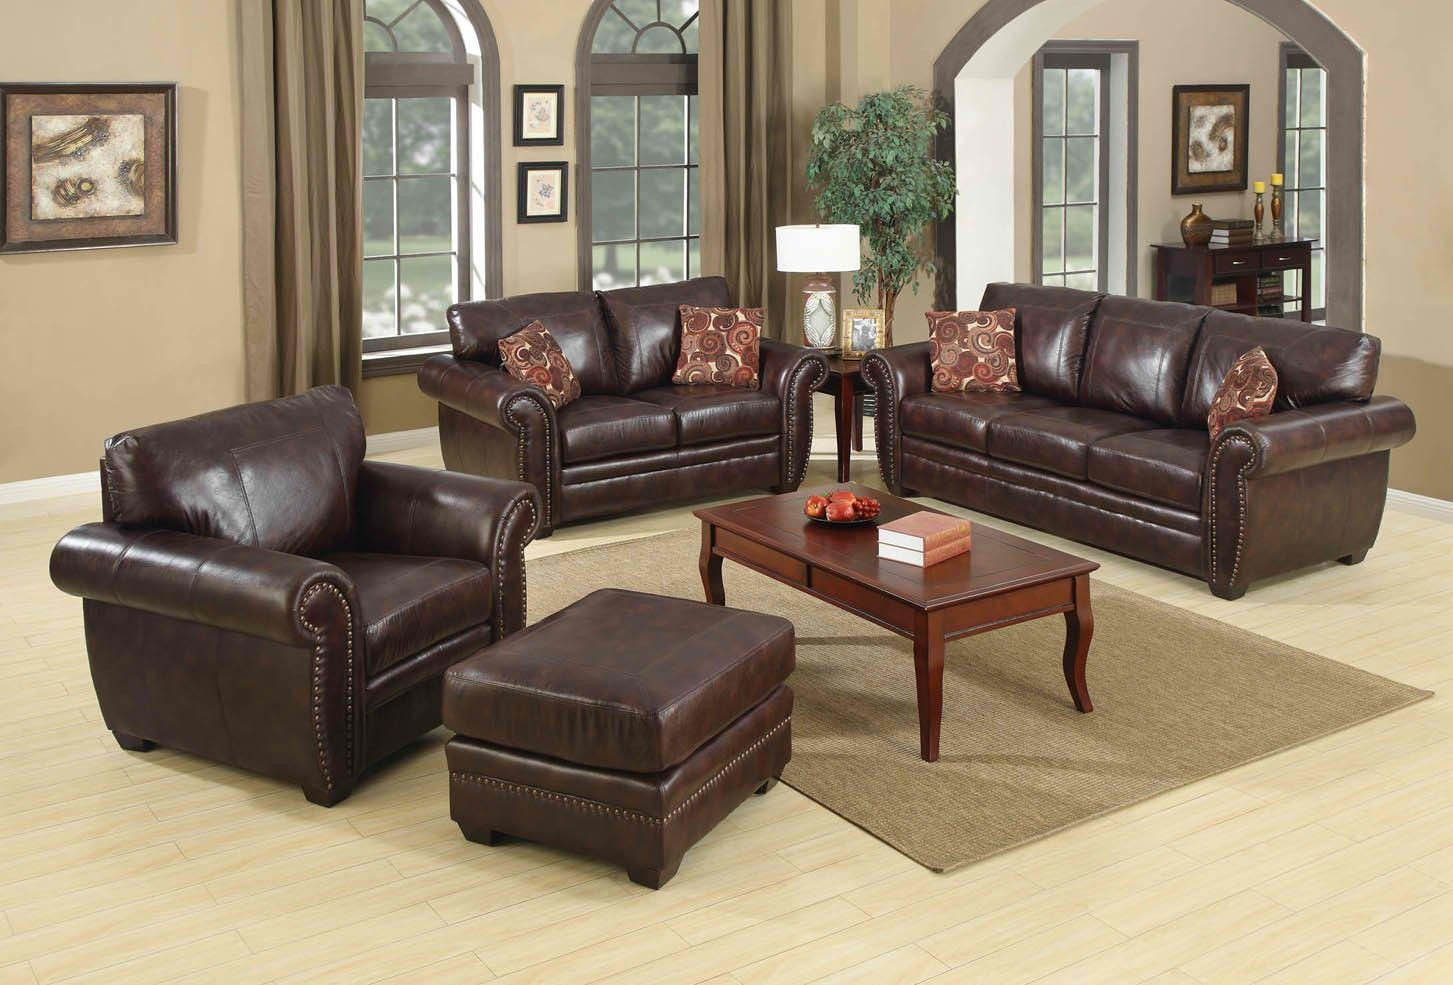 Wall colors for brown furniture list 17 ideas in best for Great living room furniture